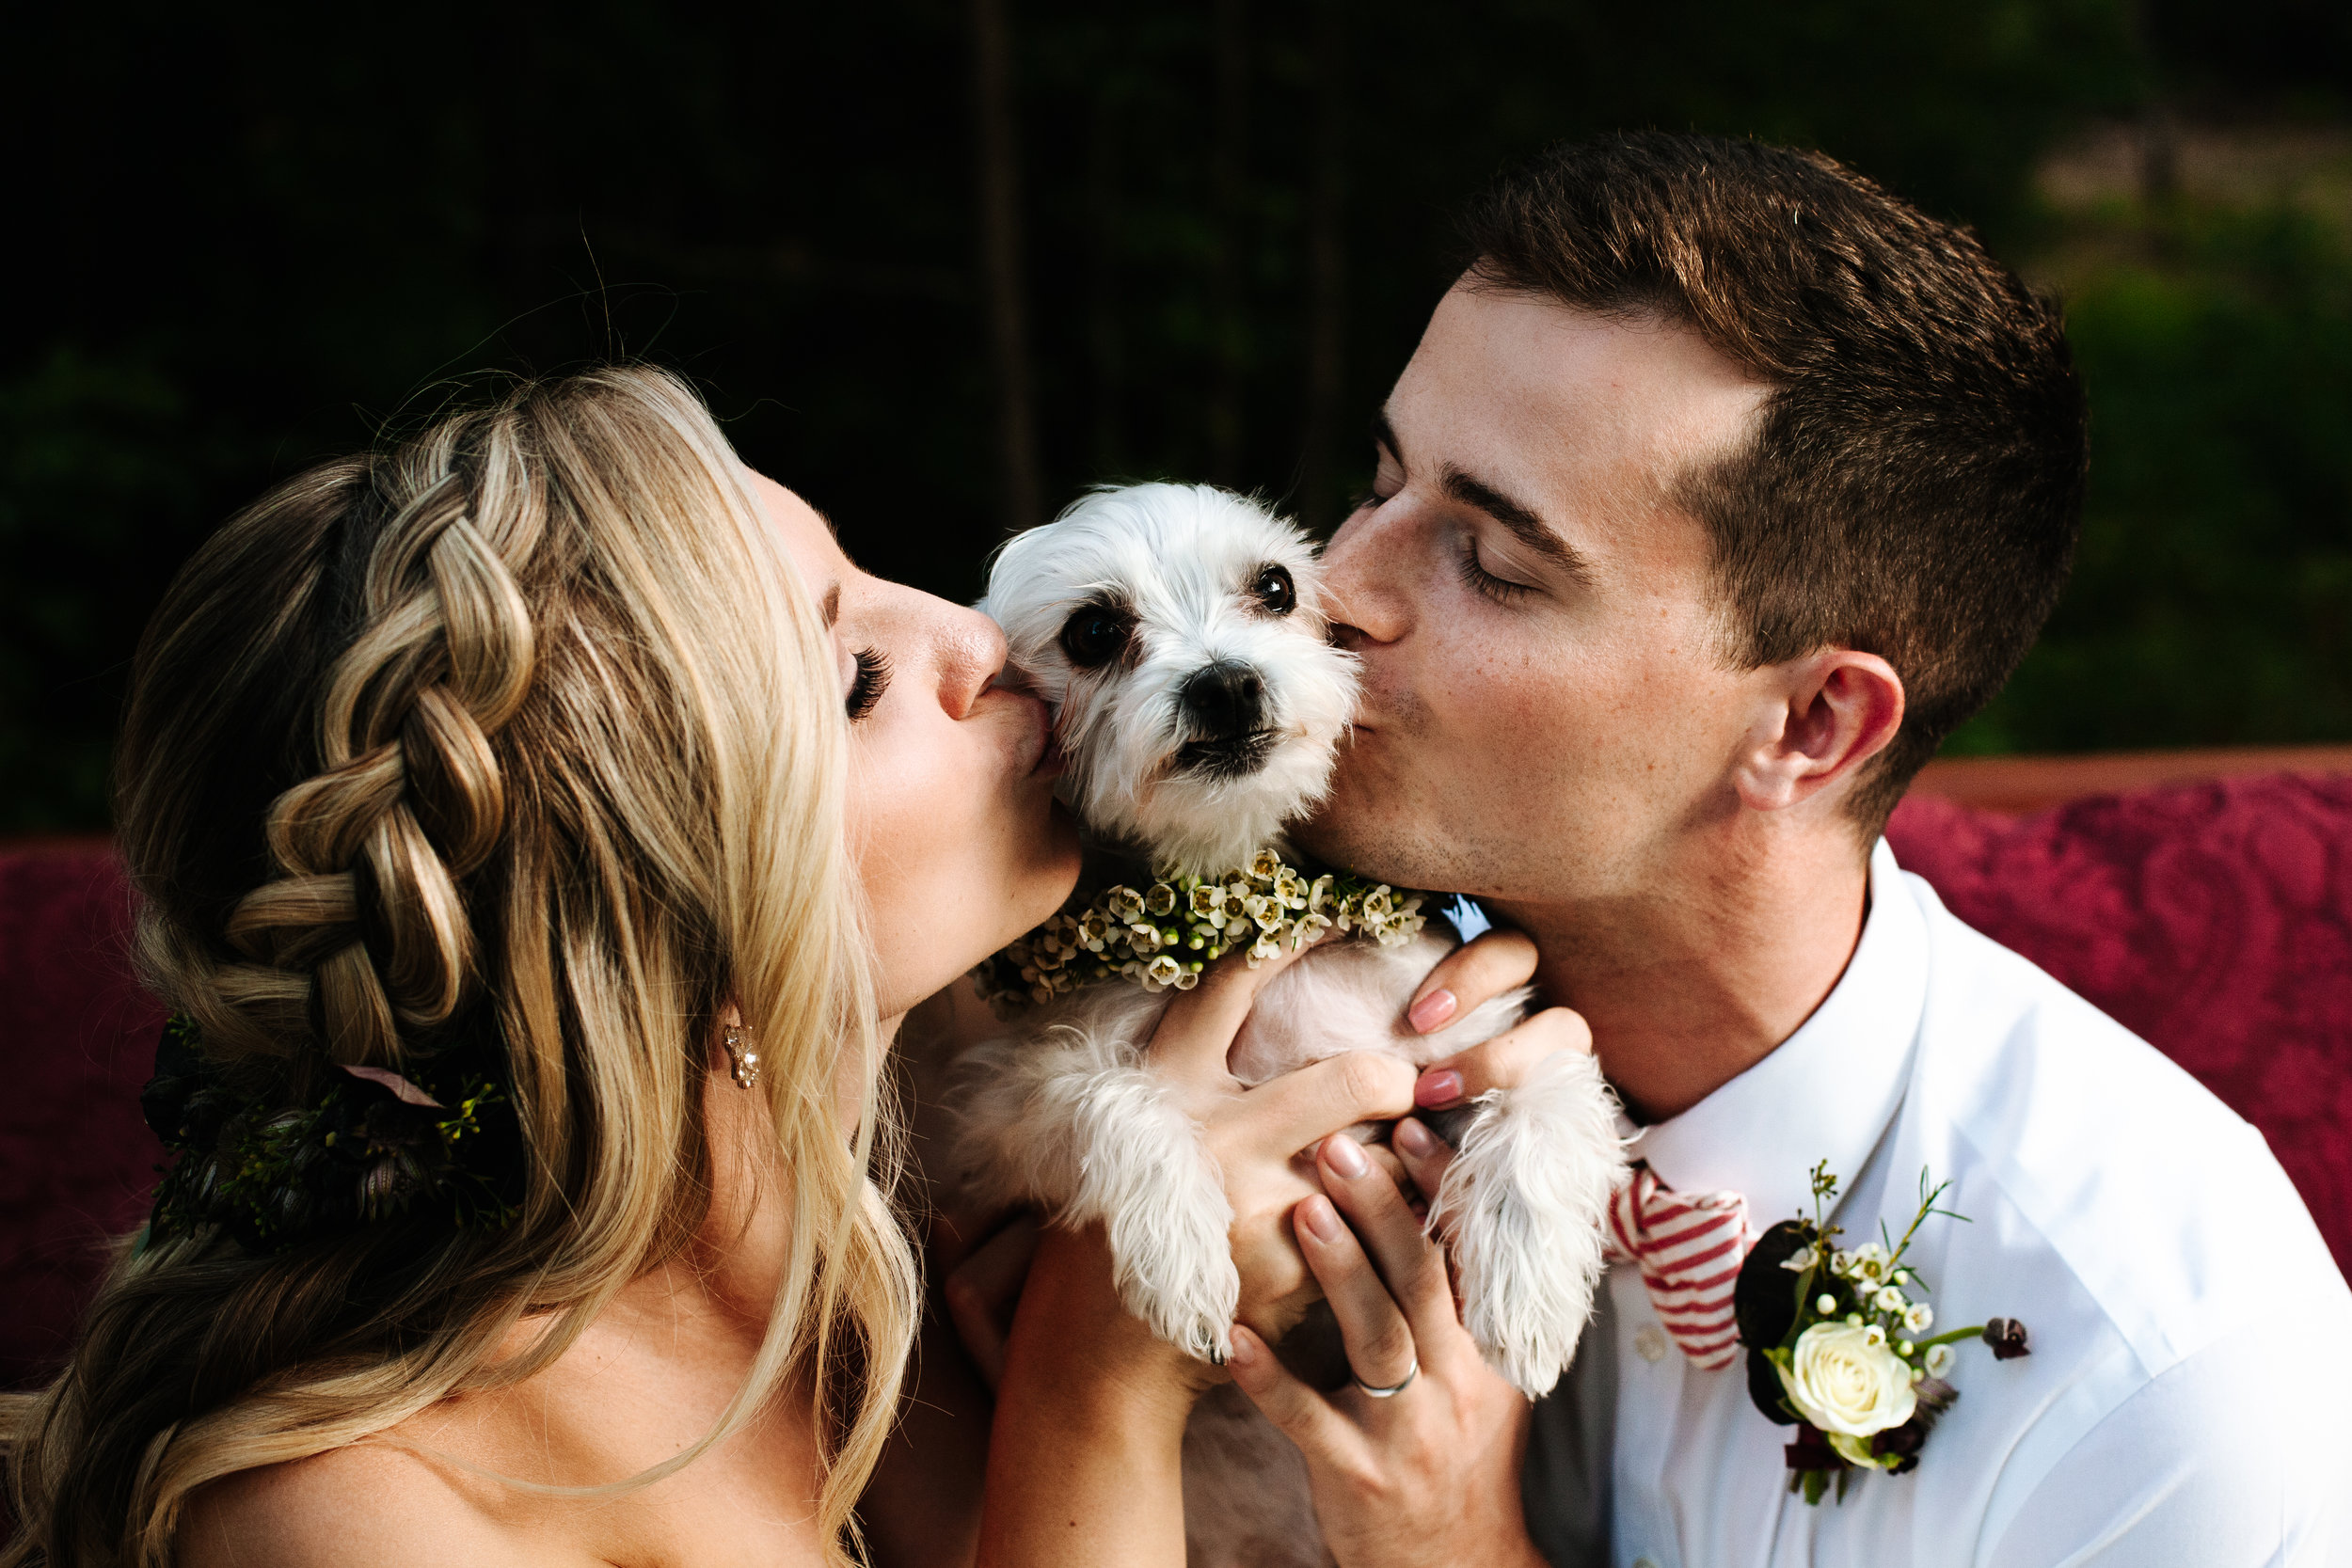 How to have your dog in your wedding-3270.jpg